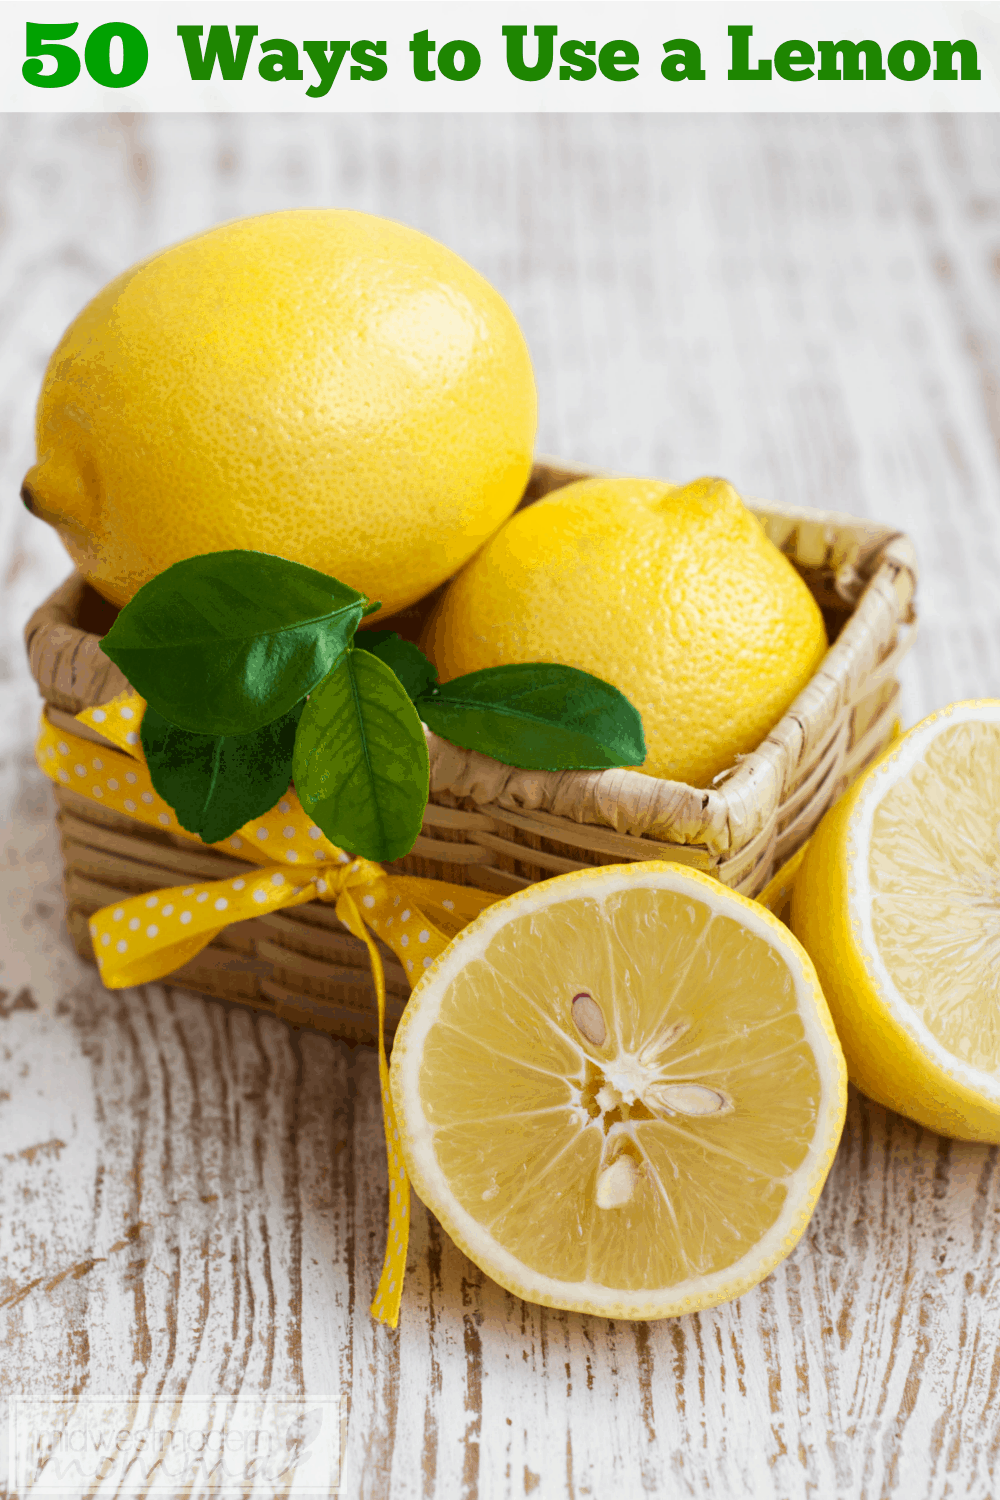 50 Ways to Use a Lemon